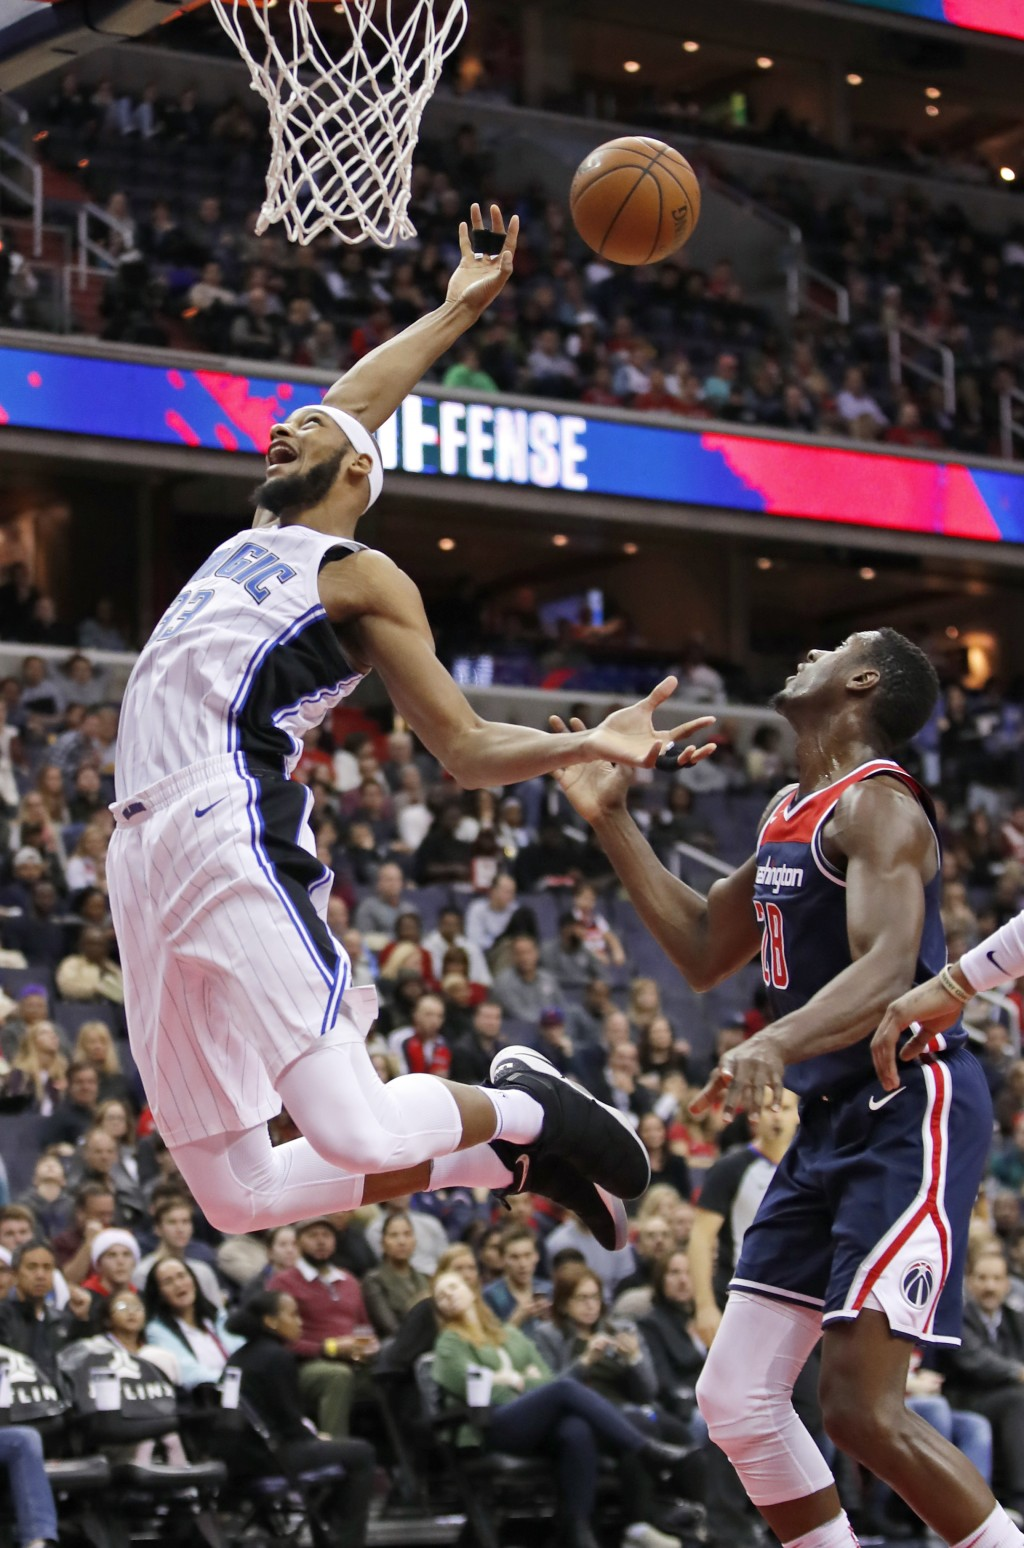 Orlando Magic forward Adreian Payne (33) loses the ball as Washington Wizards center Ian Mahinmi (28), from France, defends during the first half of a...